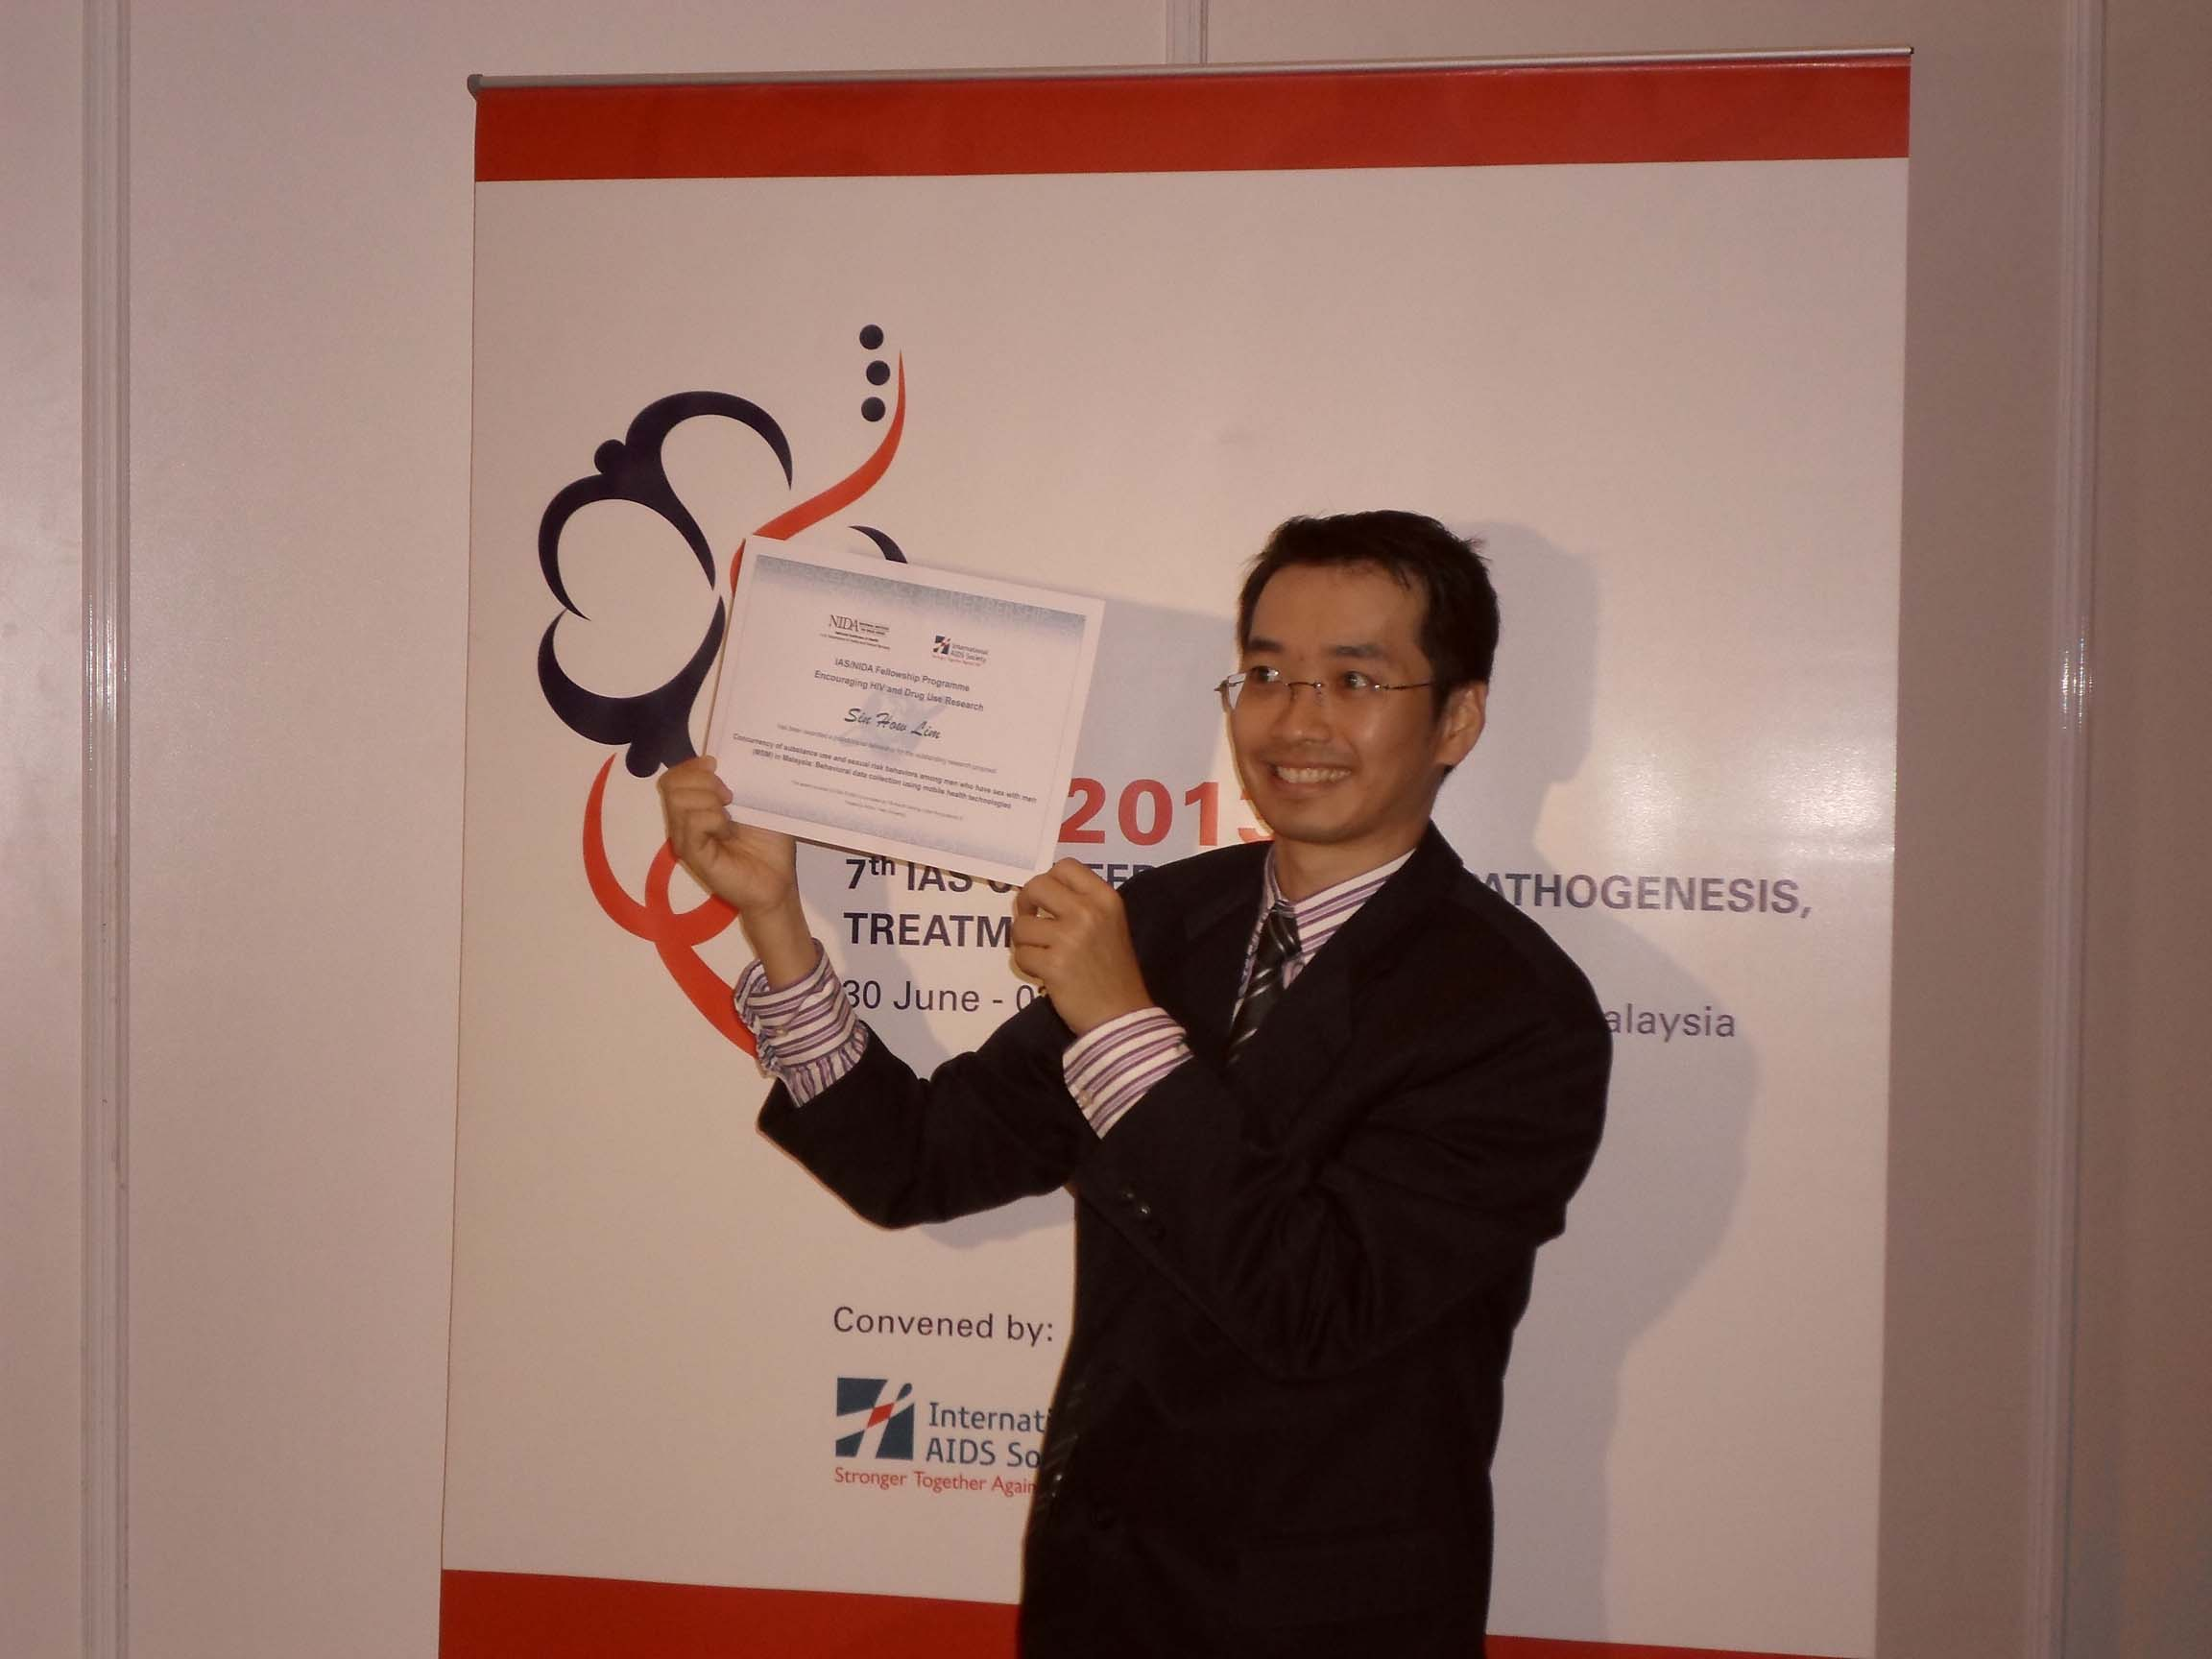 Dr Sin How Lim – Sole Malaysian Recipient of the Joint IAS-NIDA Research Fellowship Award 2013